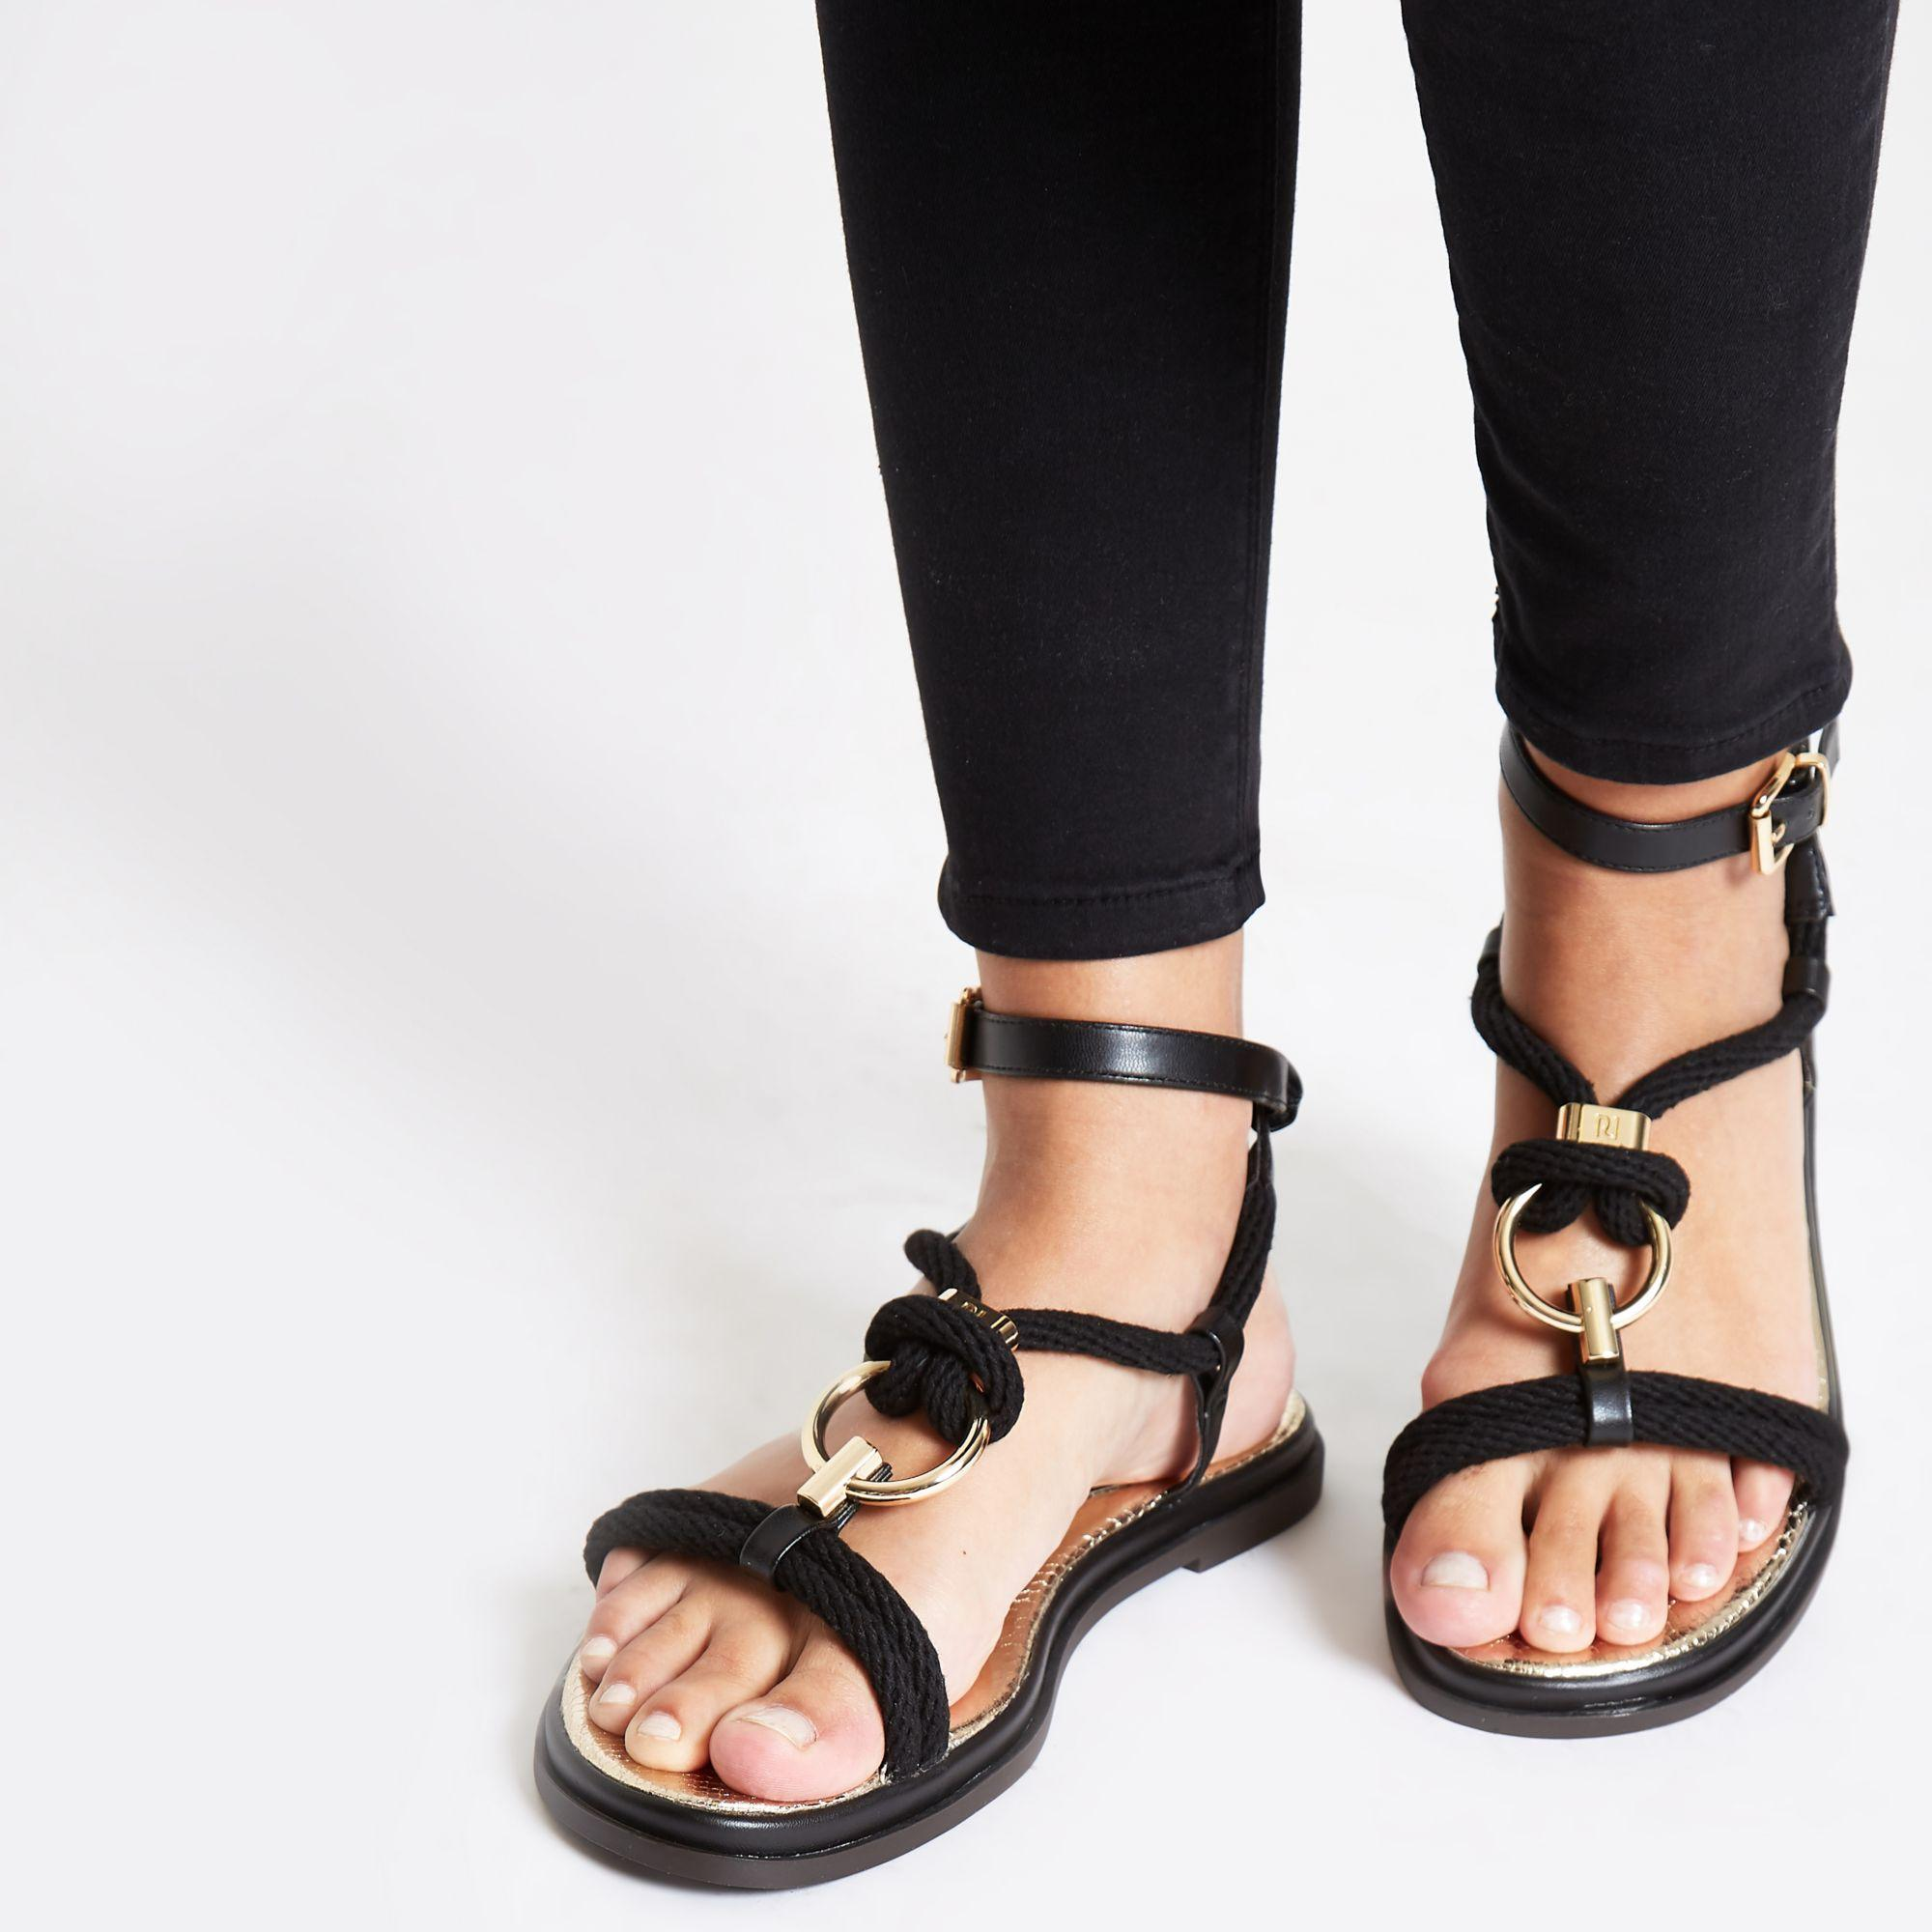 a69c7c95ba0 ... Black Ring Rope Flat Sandals - Lyst. View fullscreen